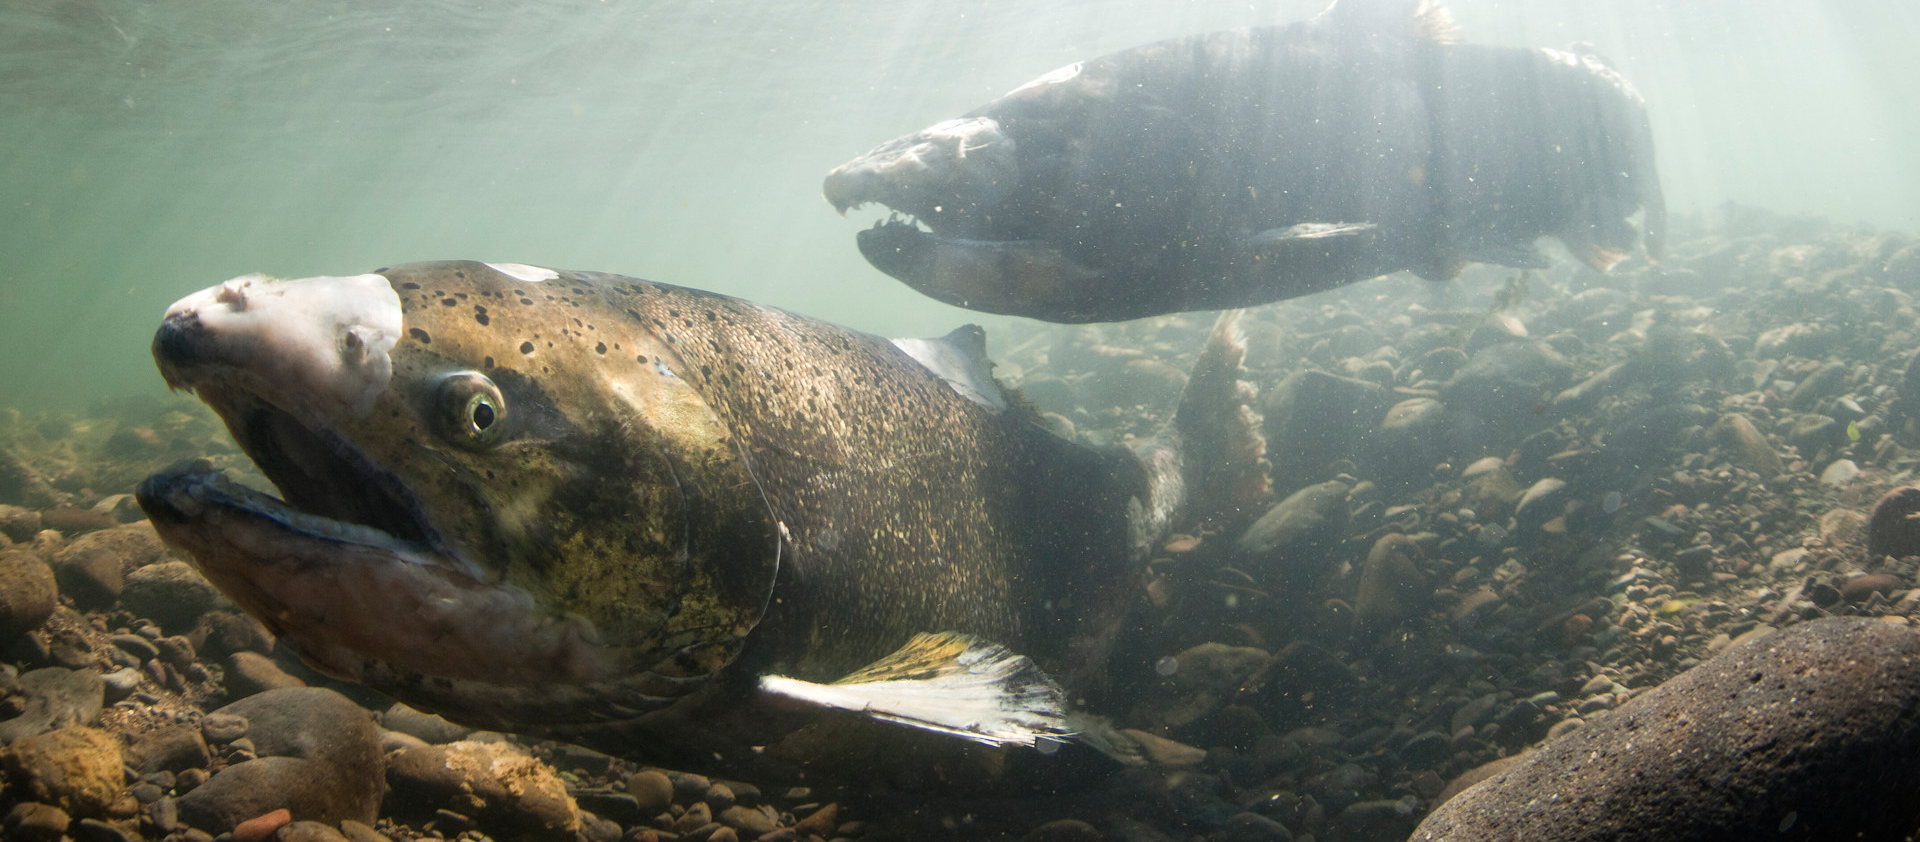 Underwater view of two Chinook salmon swimming along a rocky stream bed.